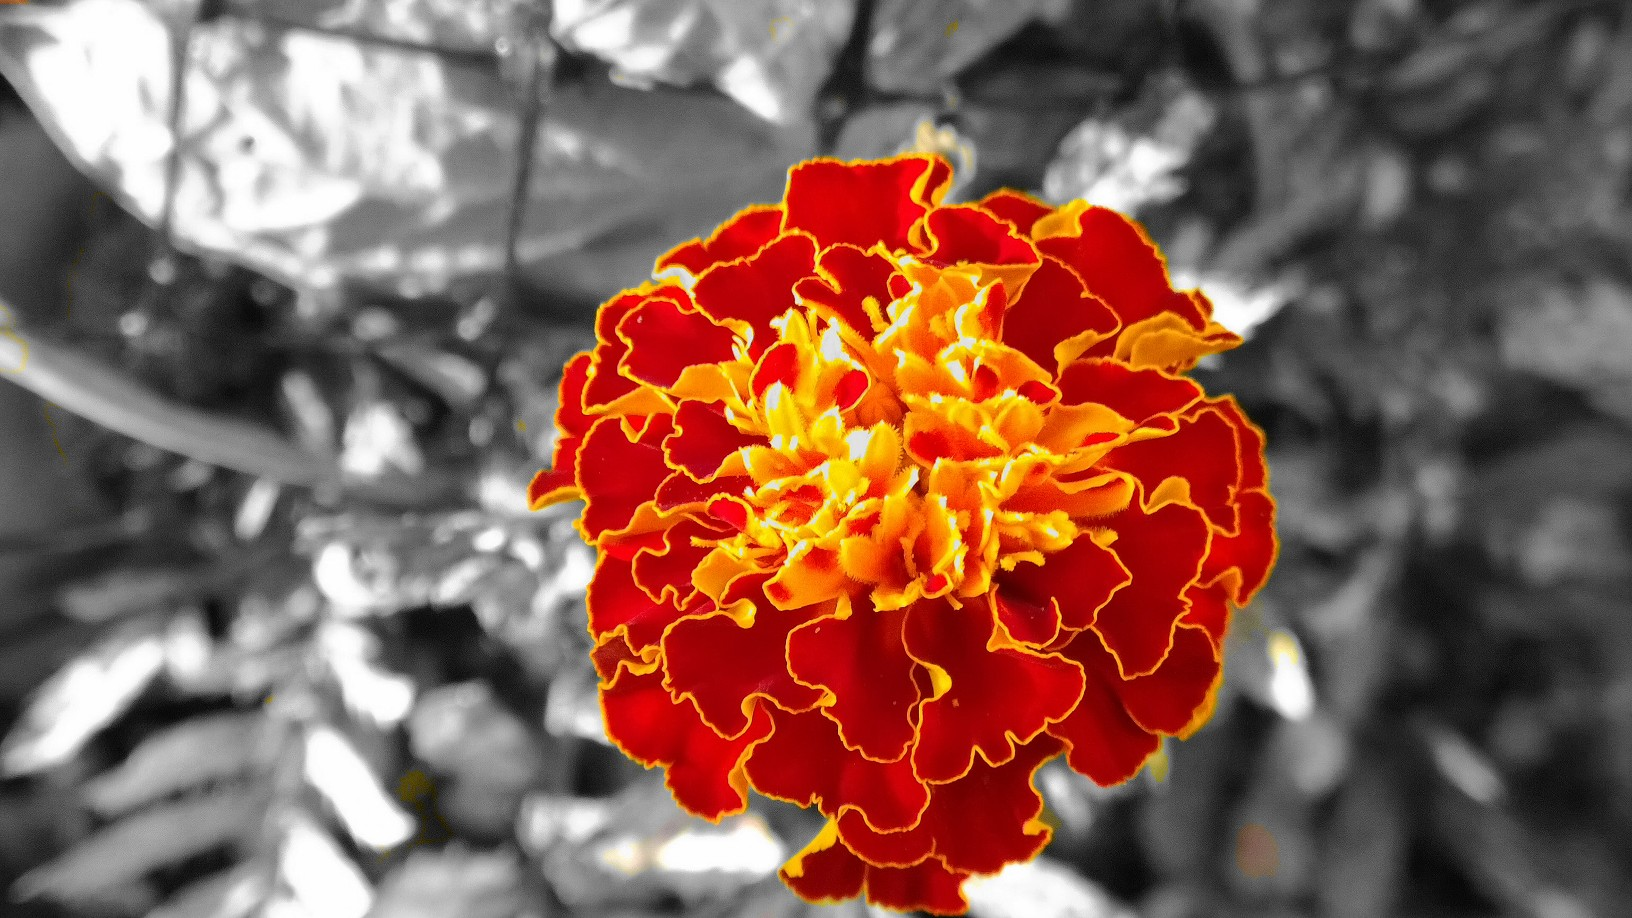 bw and color flower.jpg